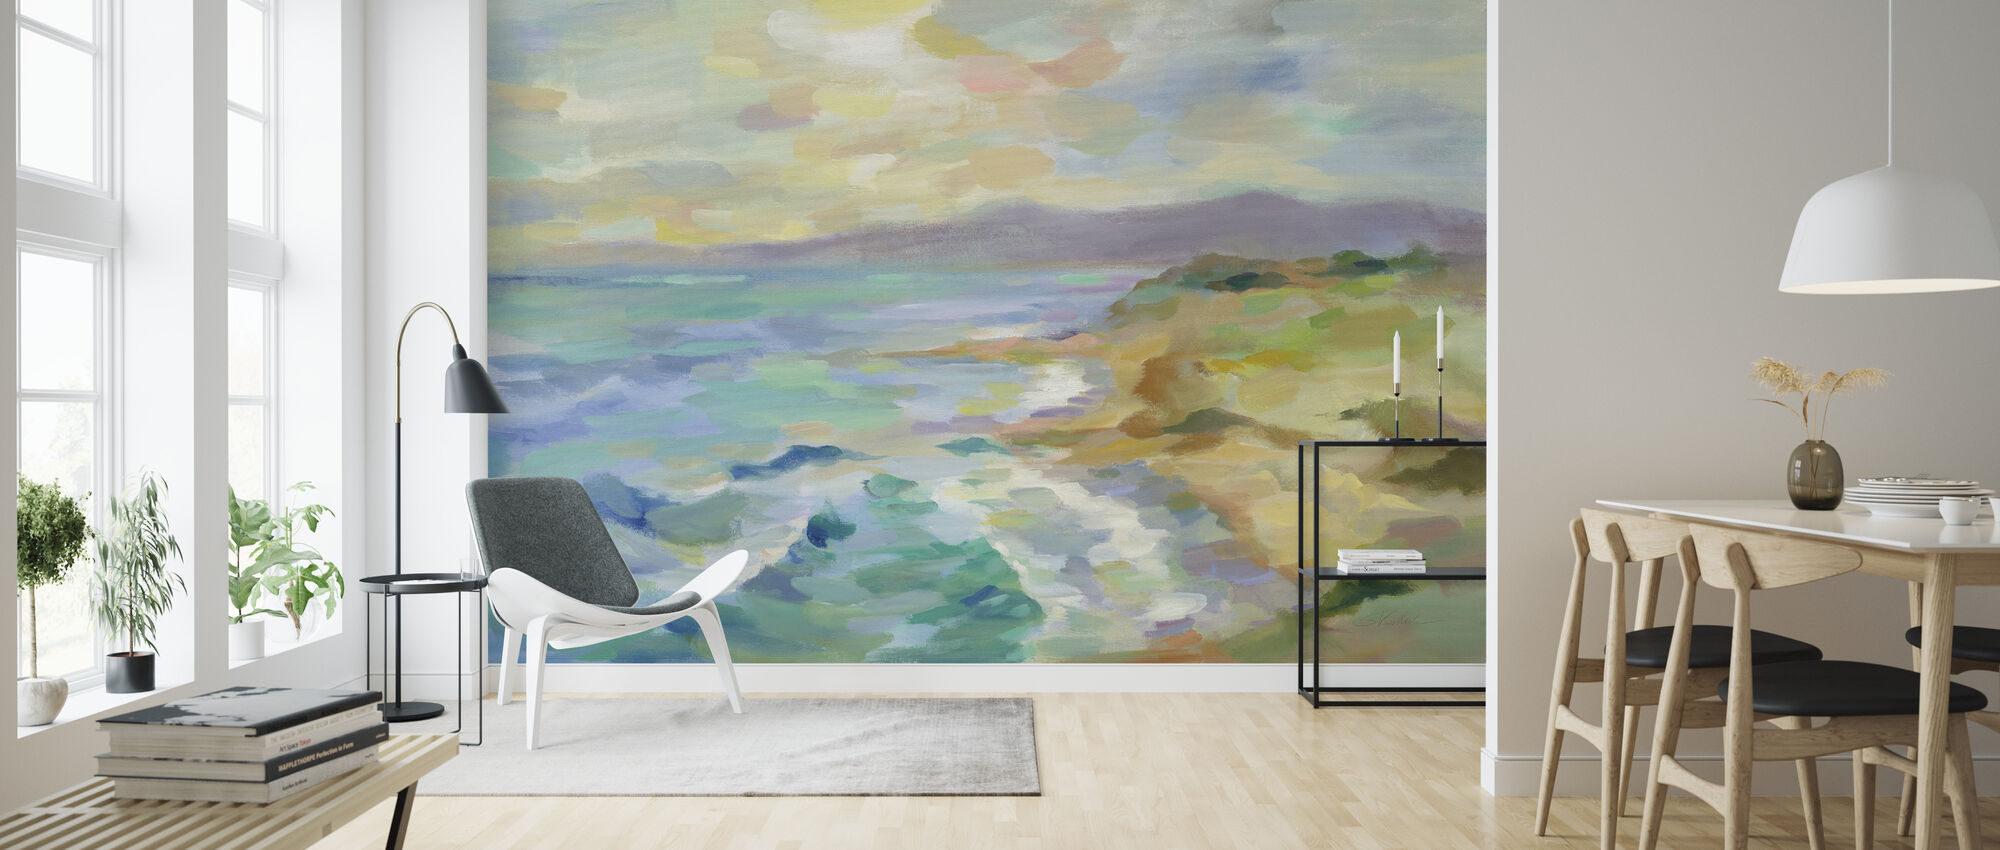 Dunes by the Sea - Wallpaper - Living Room